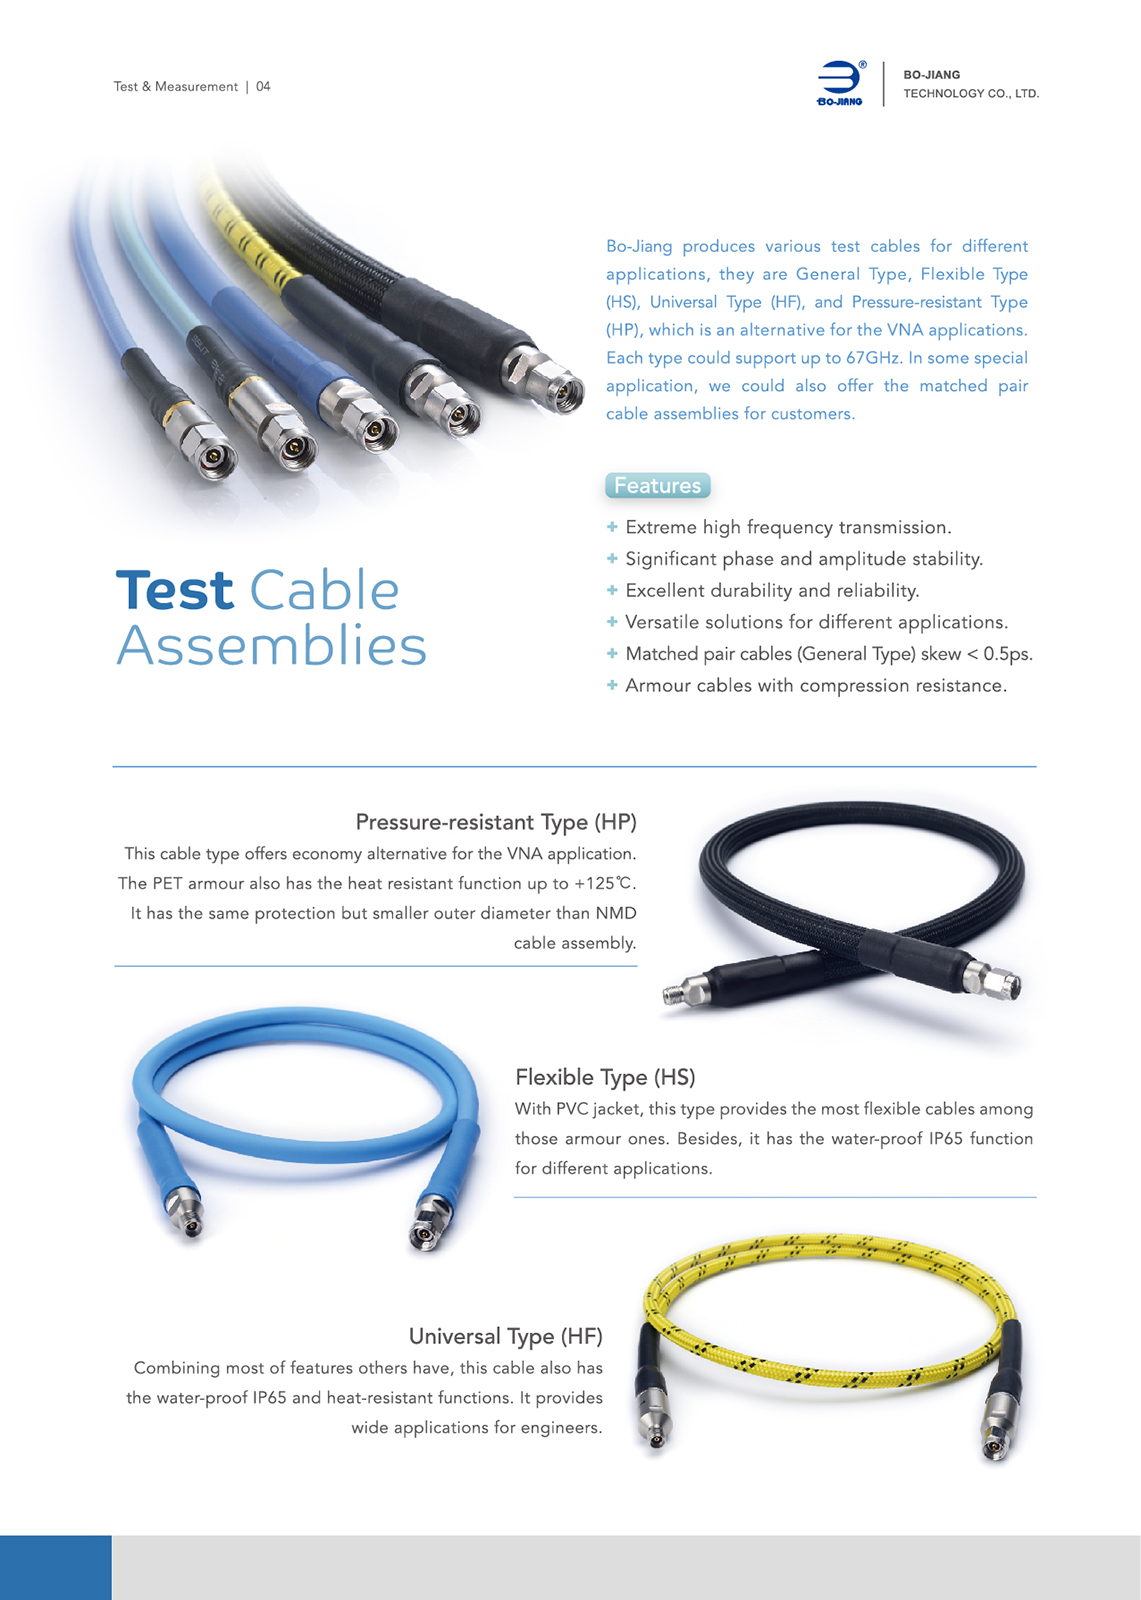 帛江科技Test Cable Assemblies